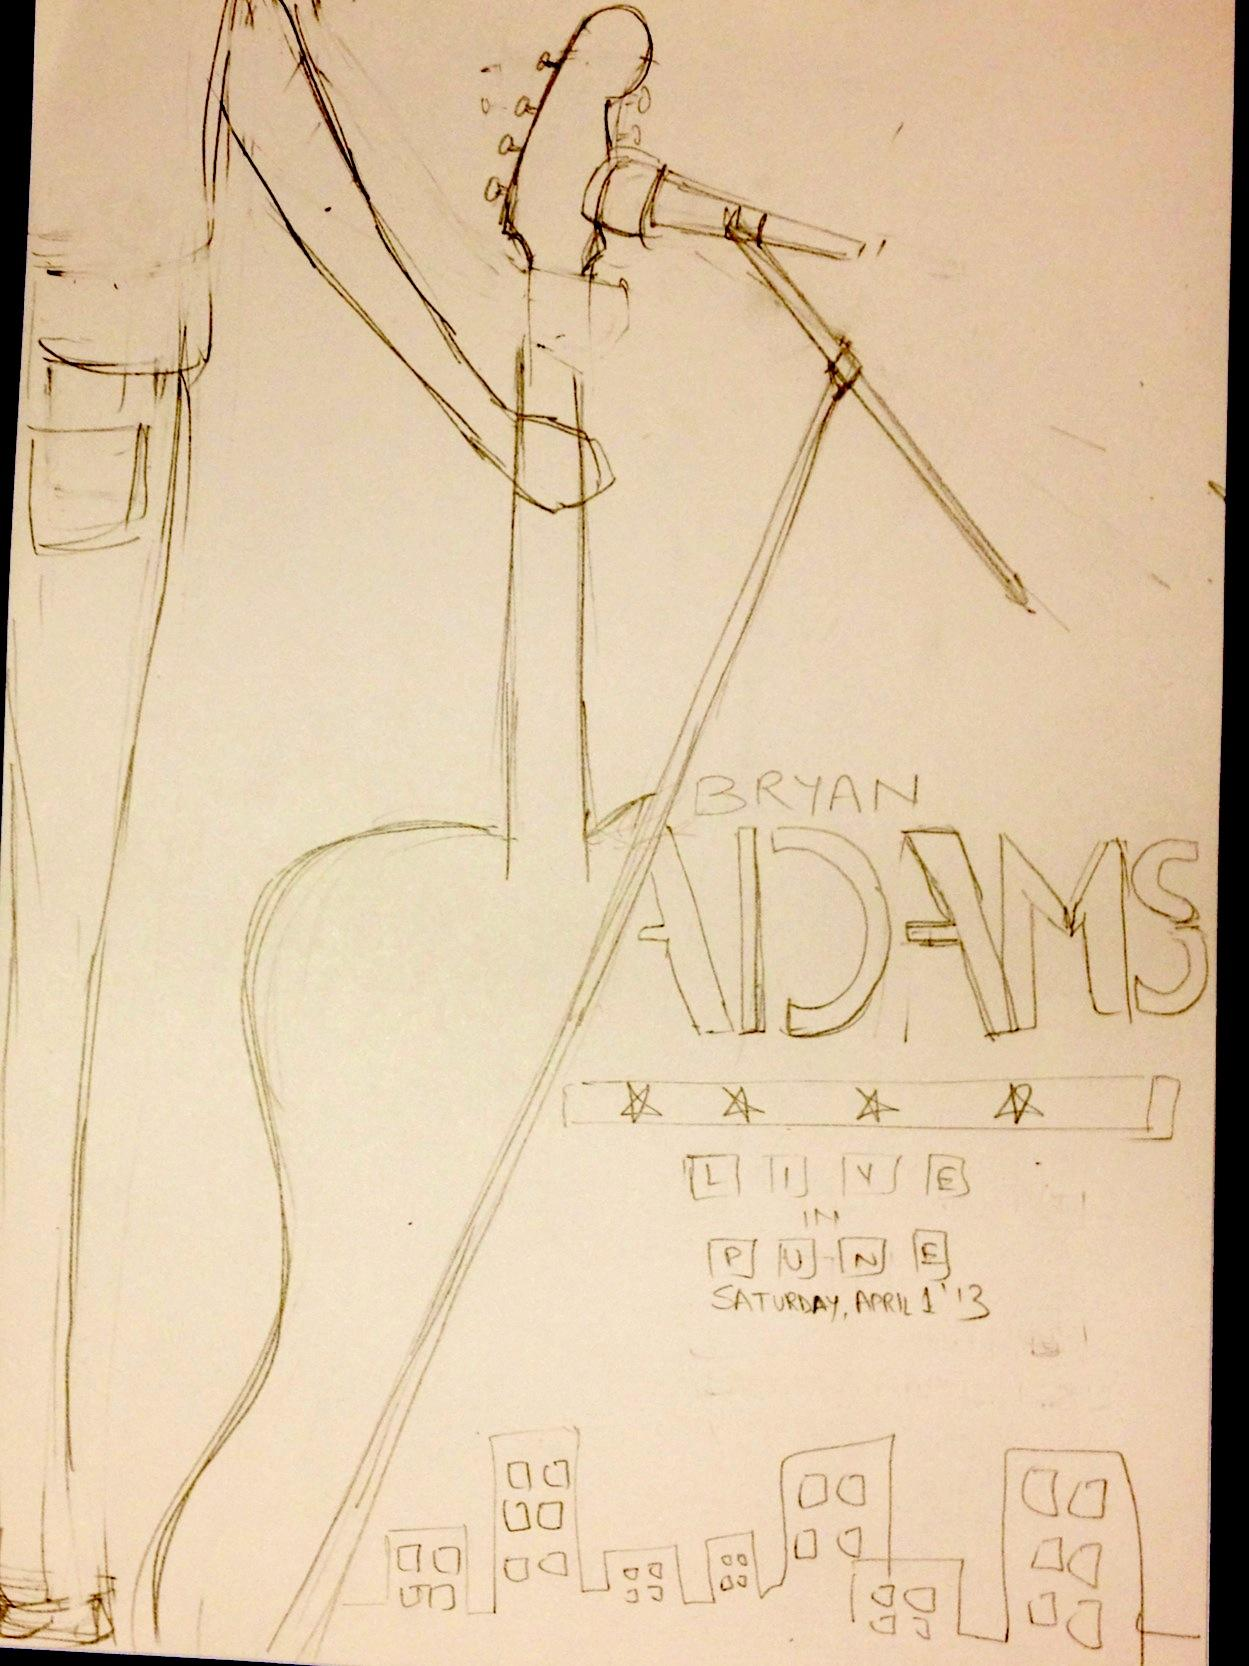 BRYAN ADAMS in India APR '13 - image 6 - student project